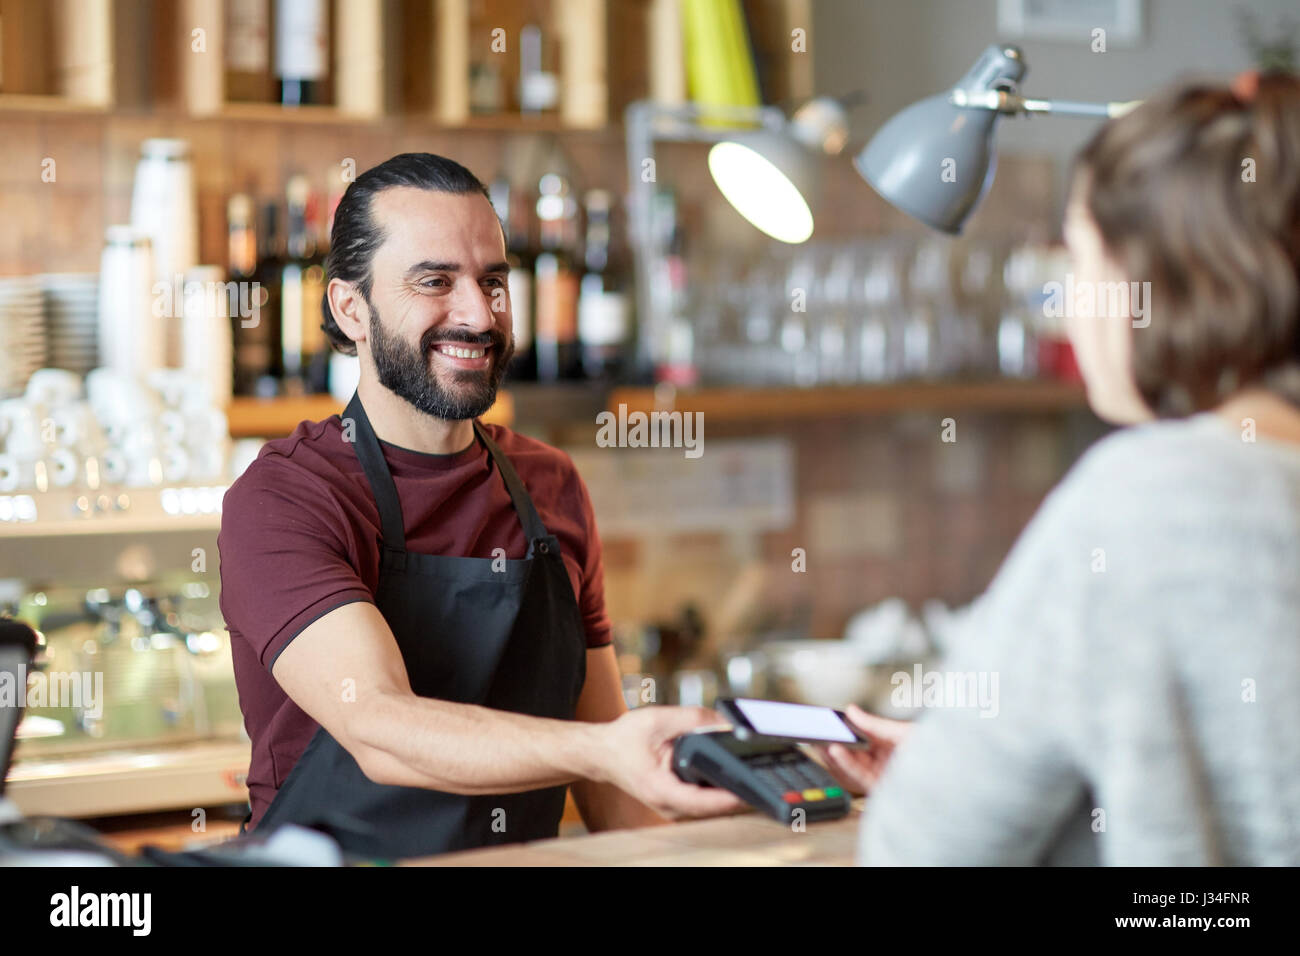 barman and woman with card reader and smartphone Stock Photo